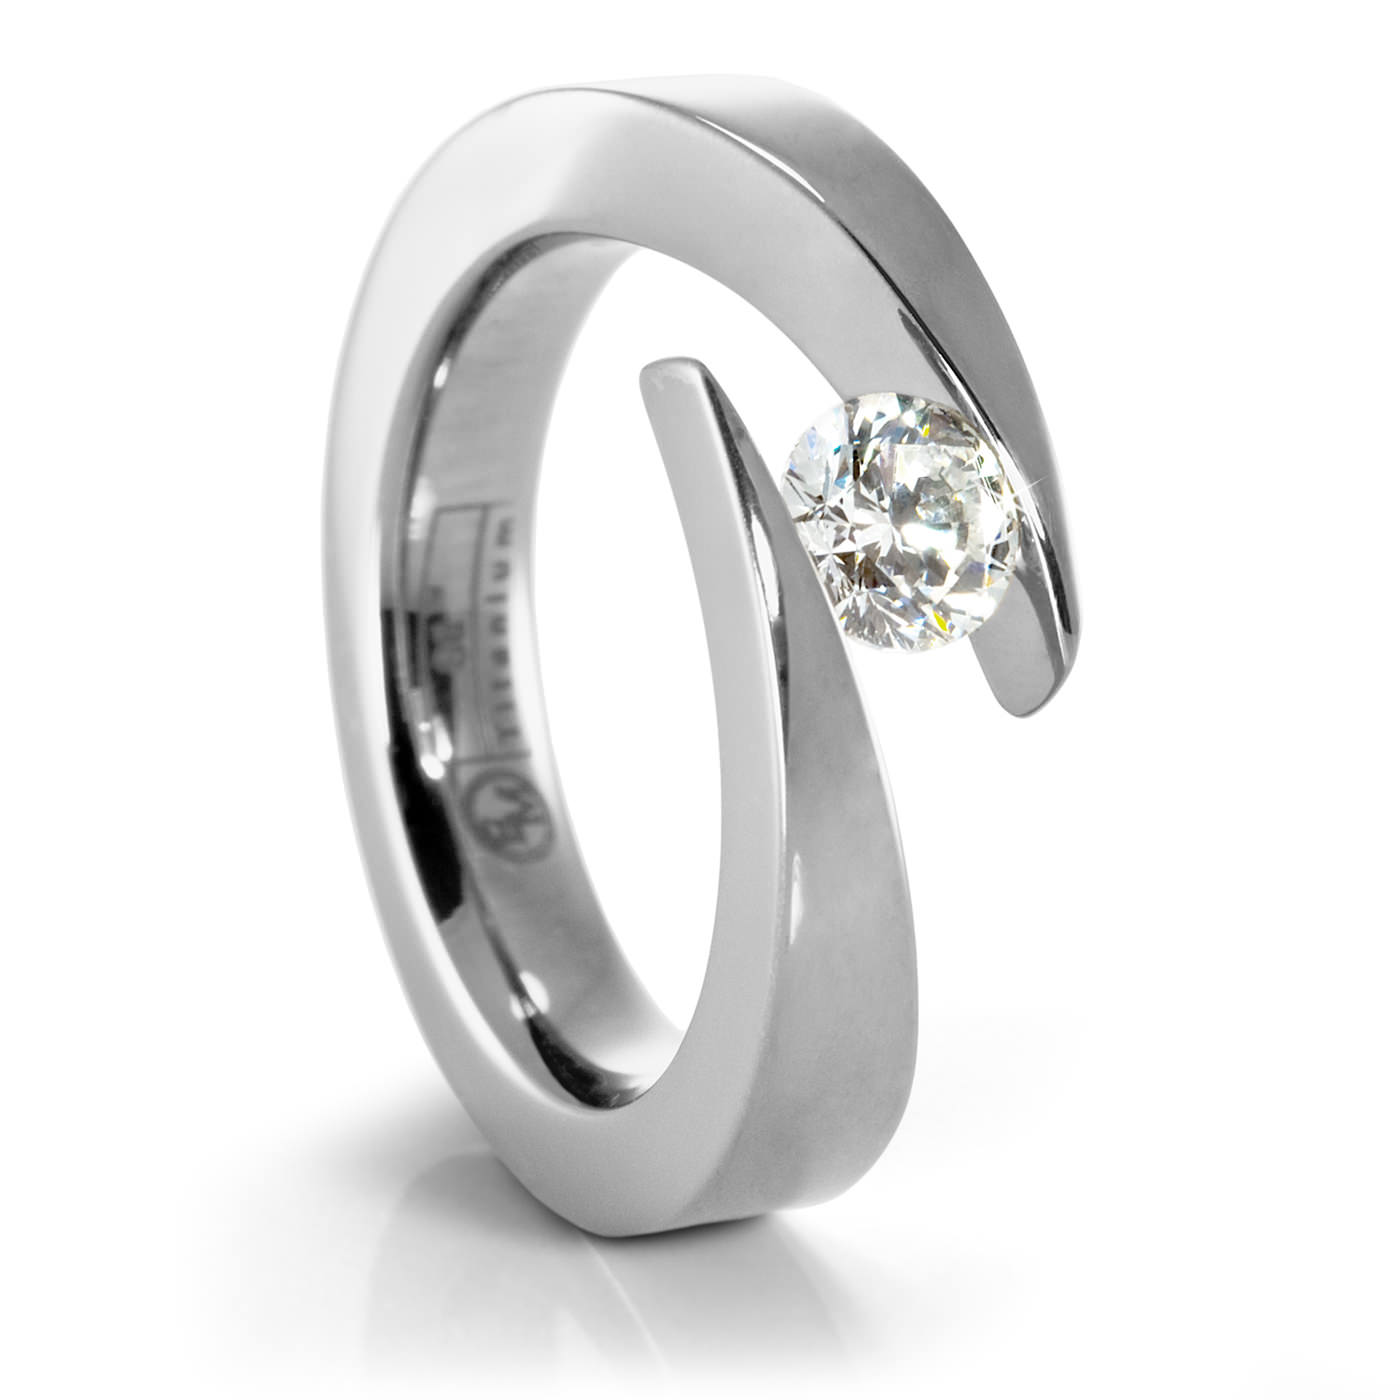 Jolie Ladies Titanium Diamond Engagement Ring